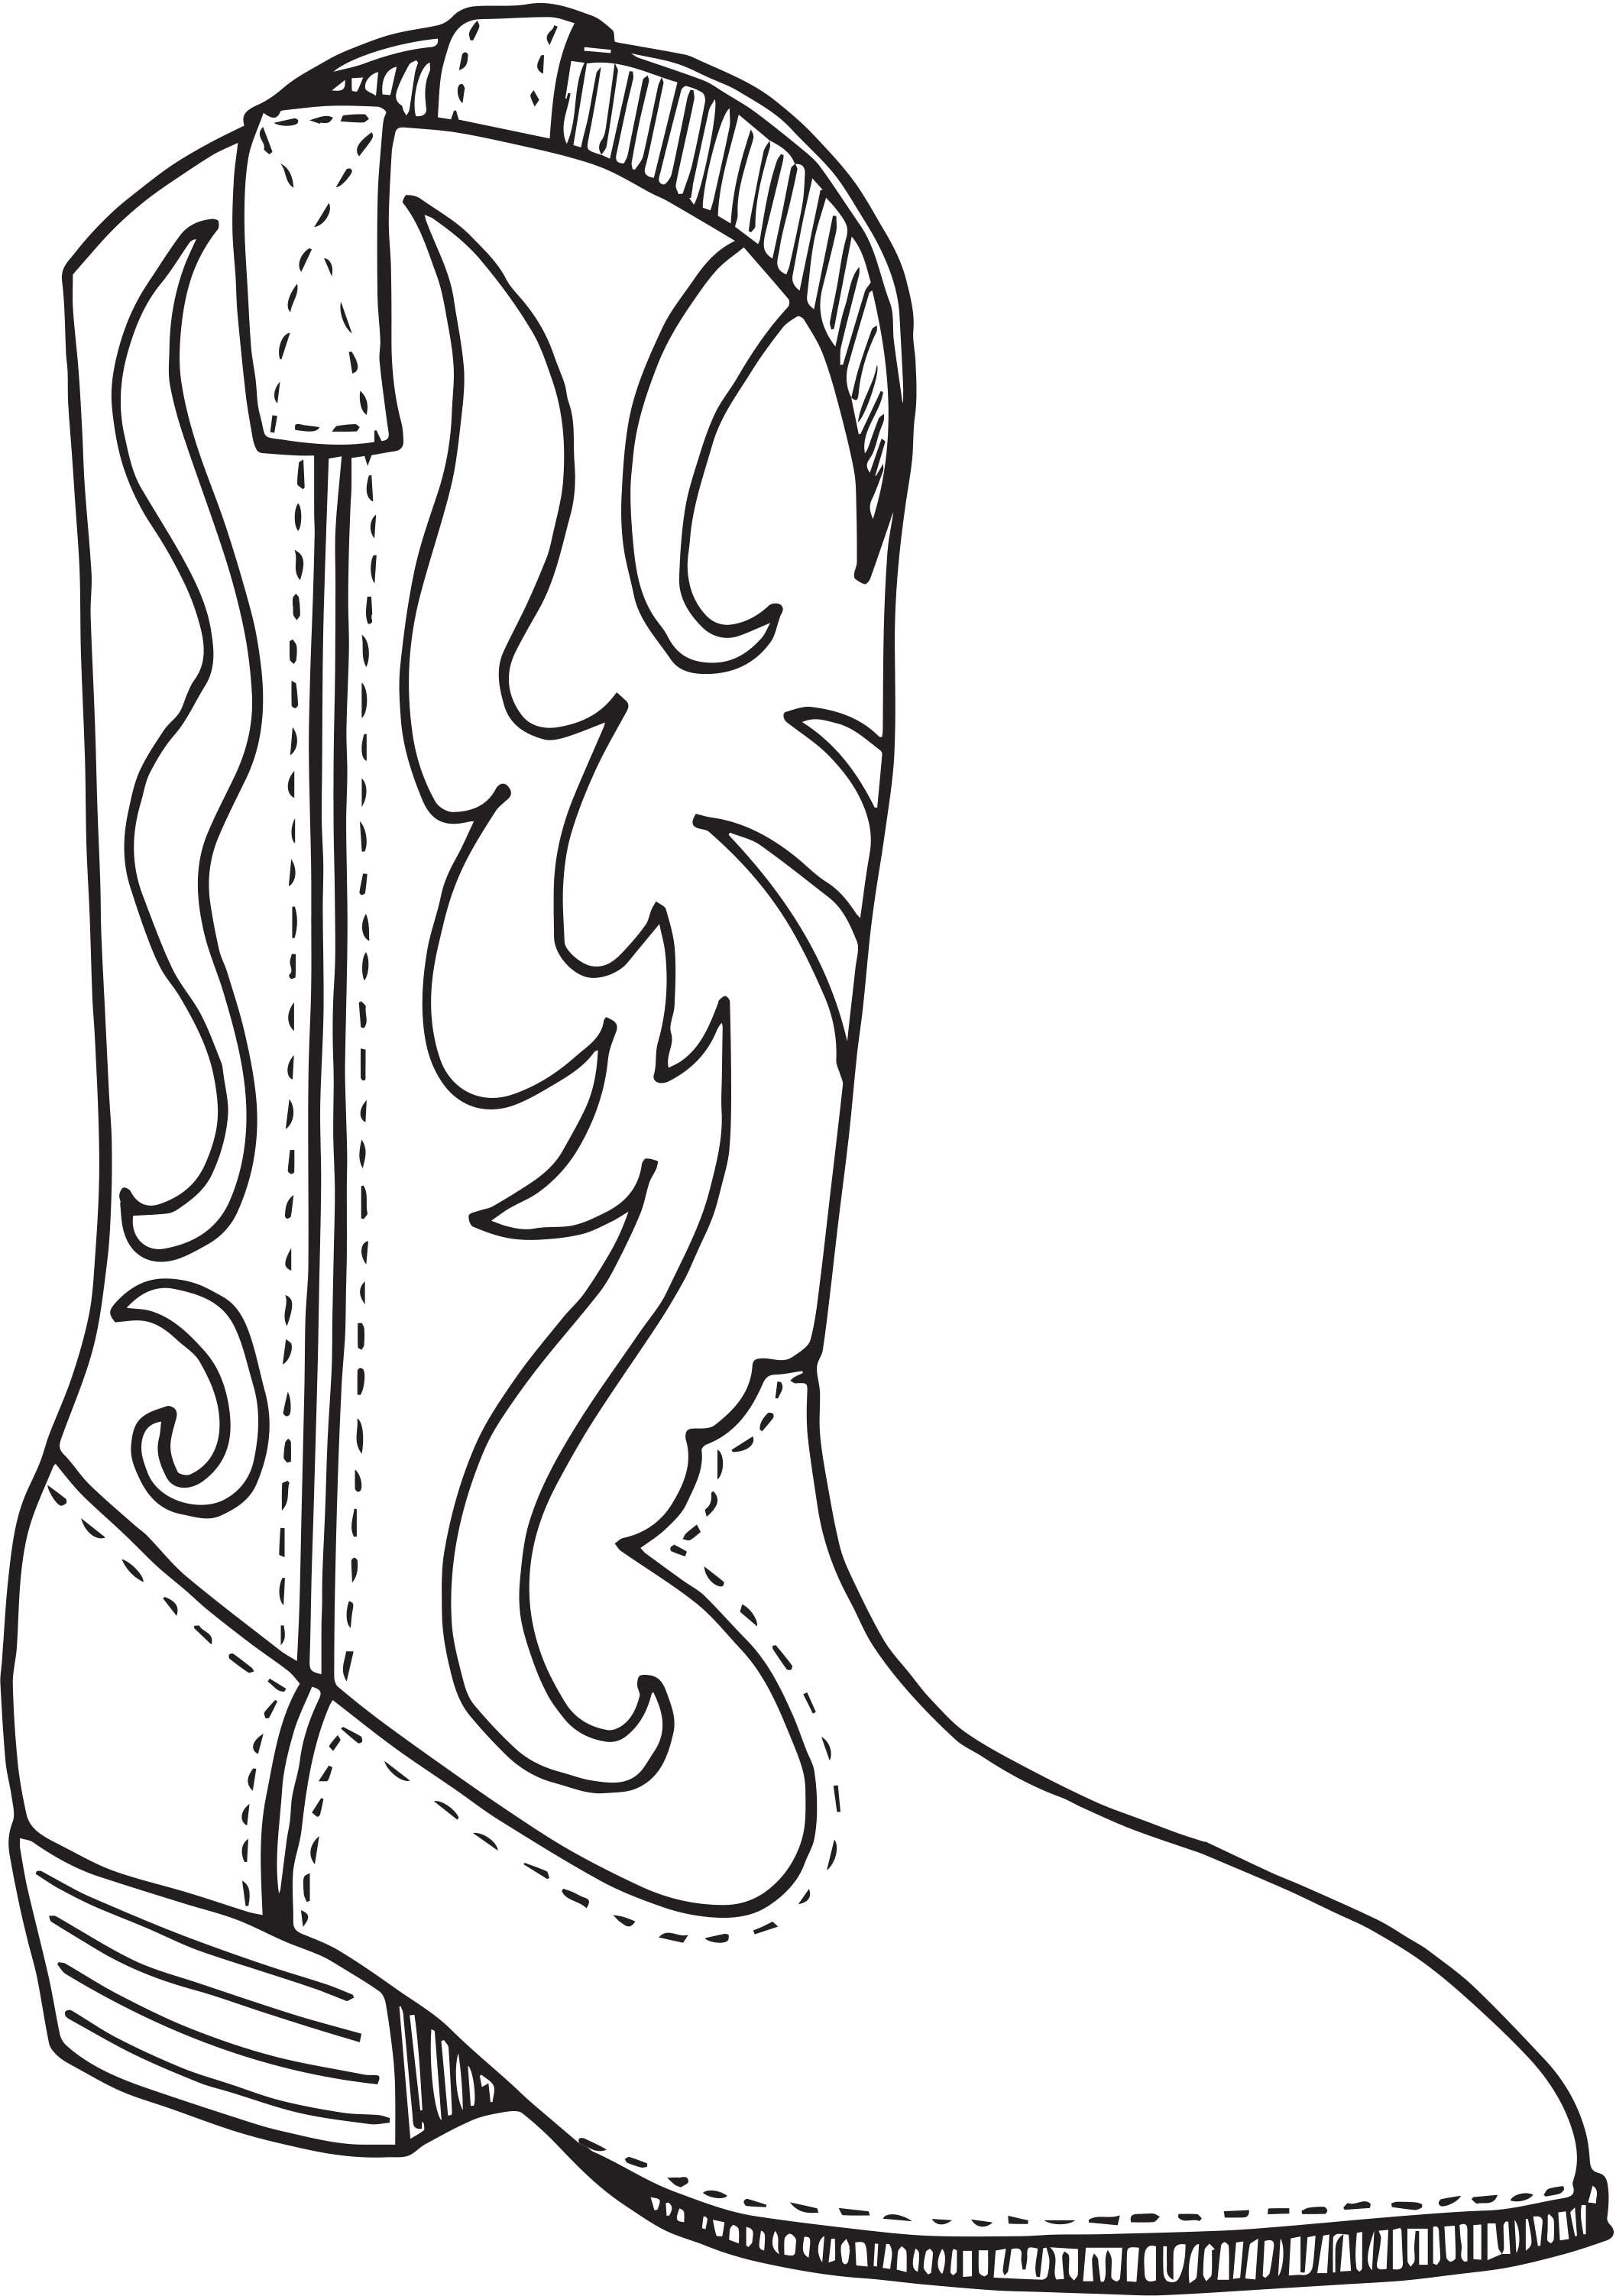 Day 5: Cowboy boot coloring page | VBX 2017: Cactusville | Pinterest ...